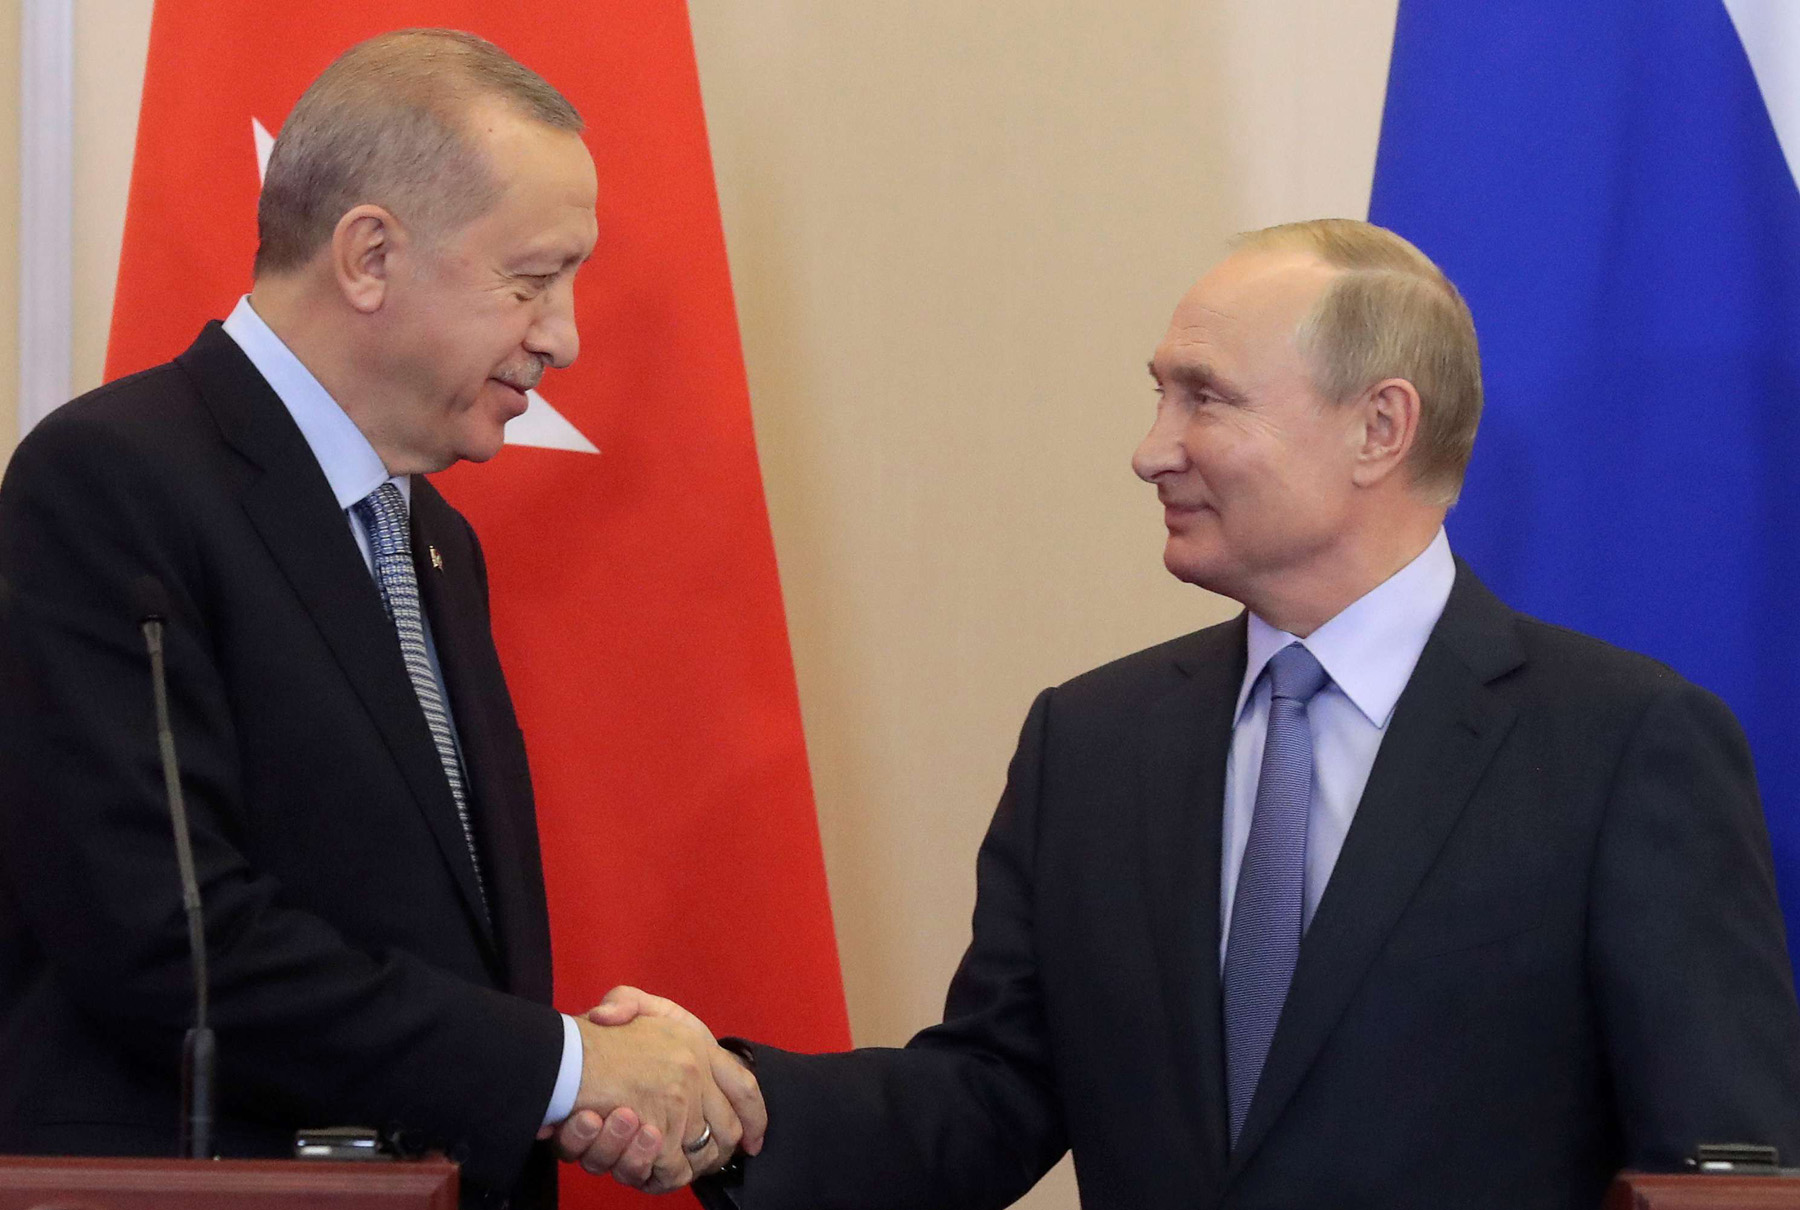 Russian President Vladimir Putin (R) shakes hands with Turkish President Recep Tayyip Erdogan (L) during a joint news conference following Russian-Turkish talks in the Black sea resort of Sochi, Russia October 22. (Reuters)